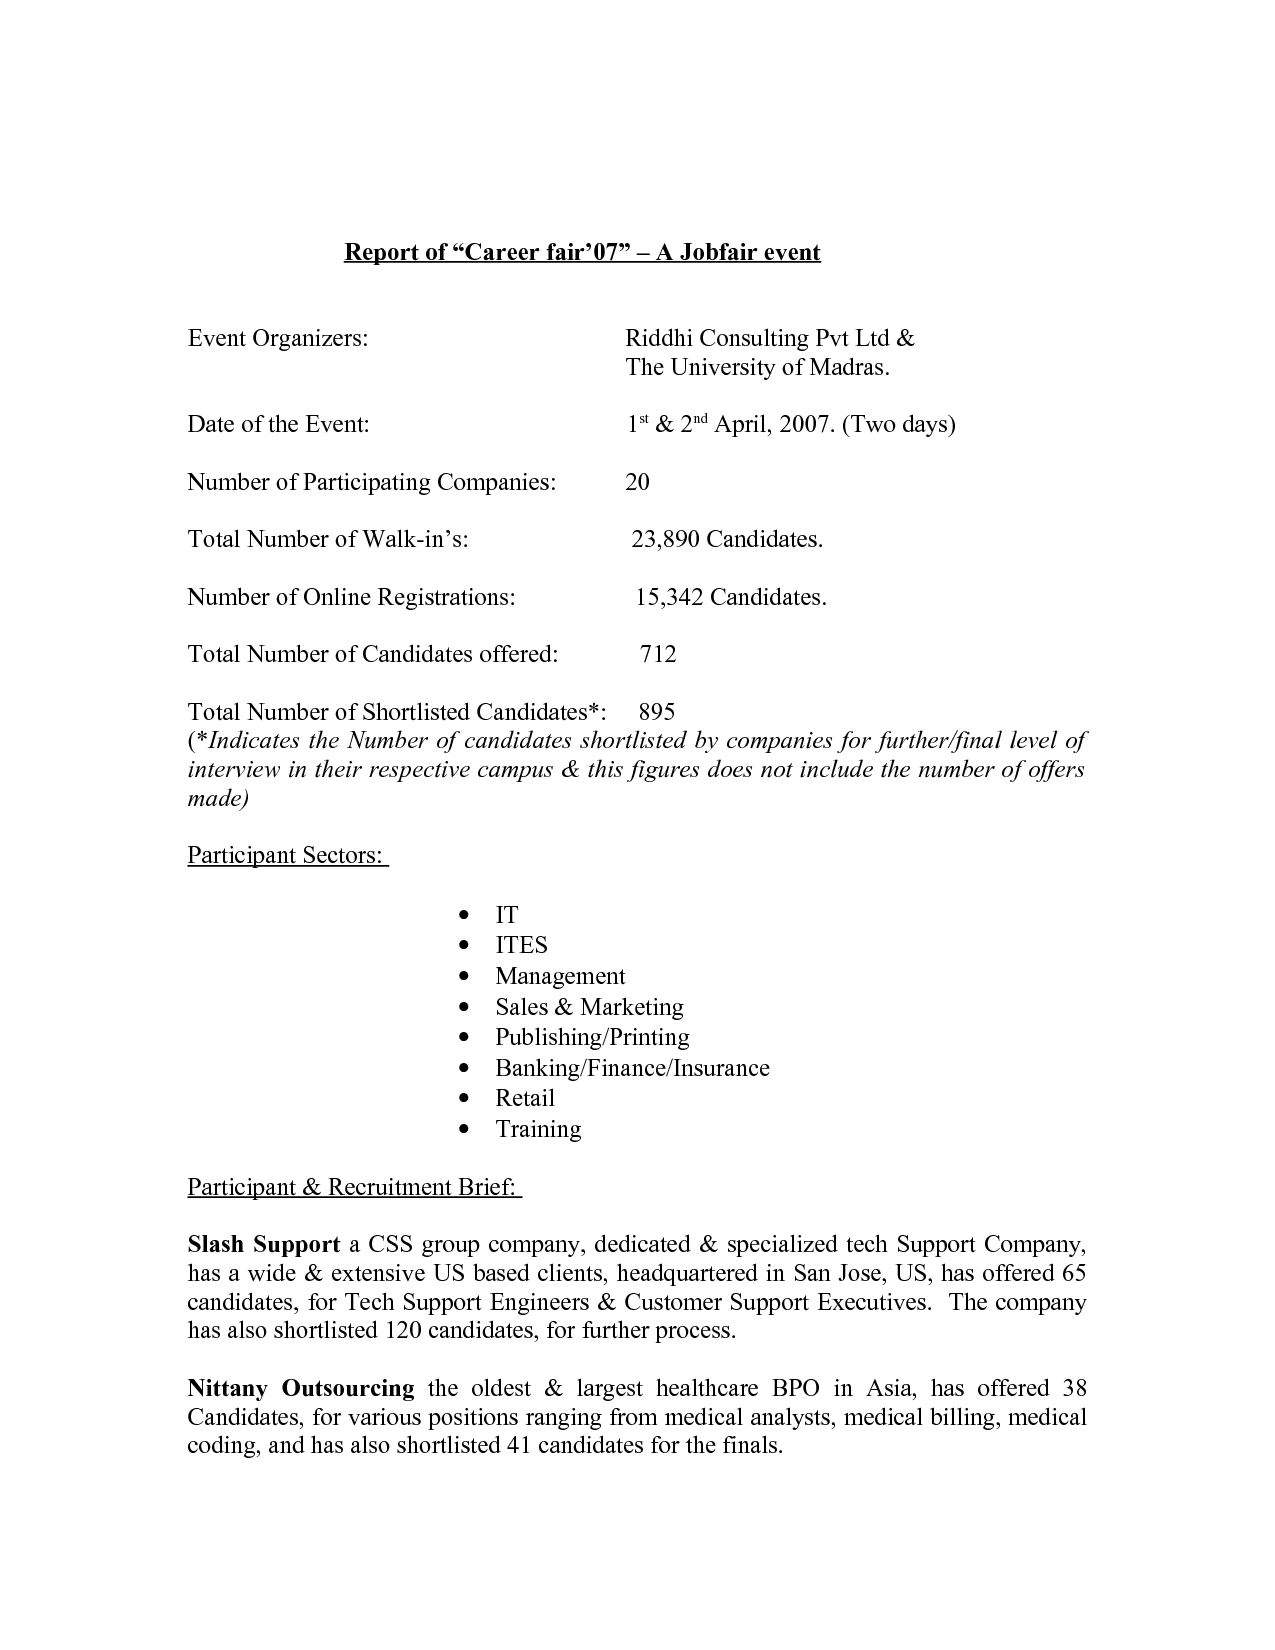 Free Download Resume Templates Resume Format For Freshers Free Download Resume Format For